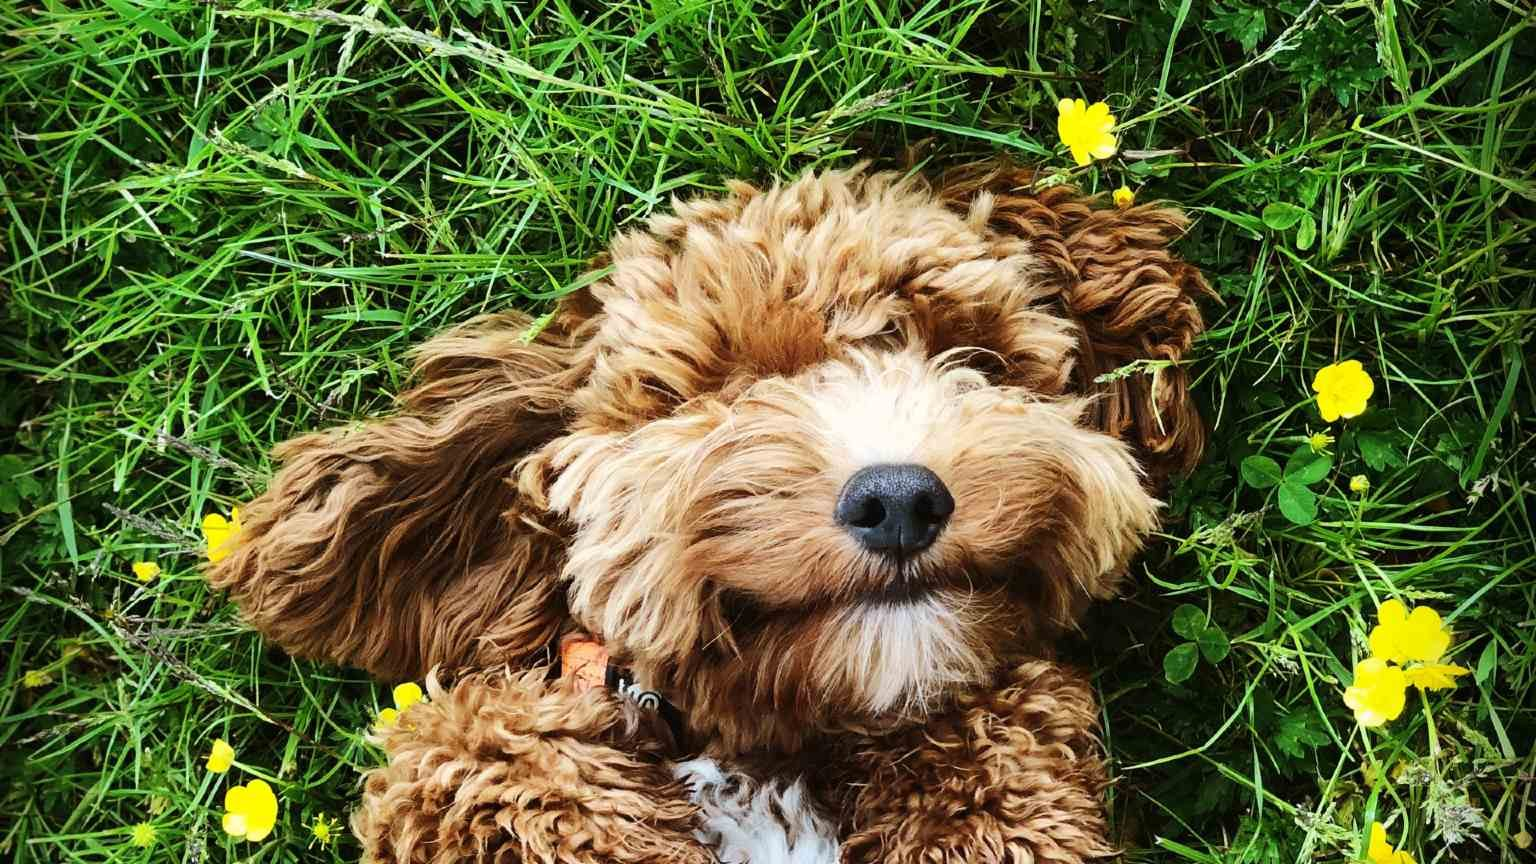 Cockapoo puppy in grass